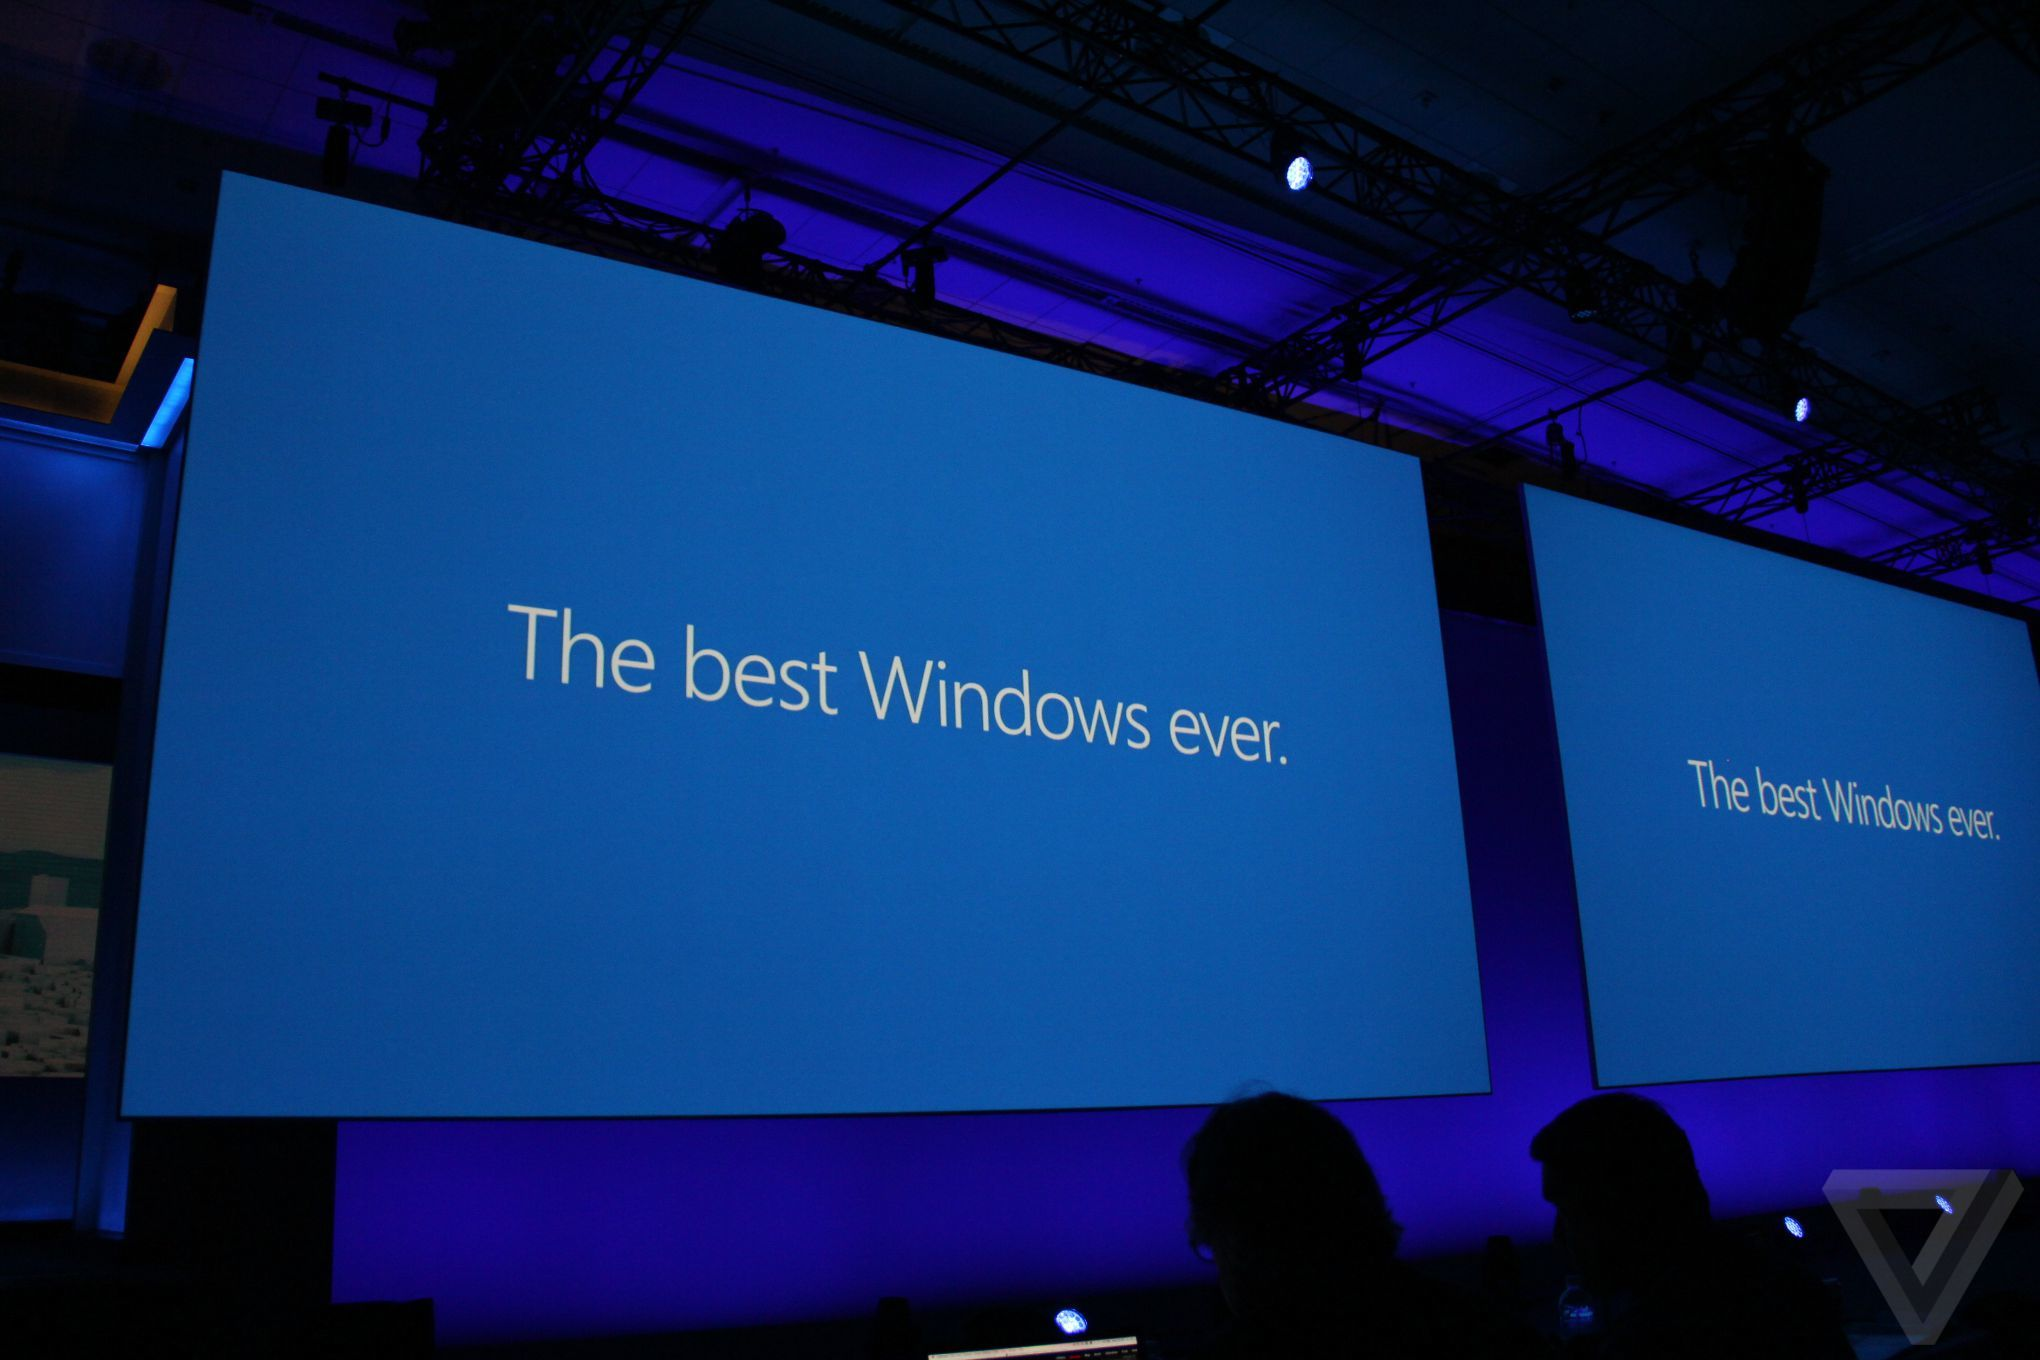 Windows 10 Build 10586.63 for non-Insider PCs now available ...